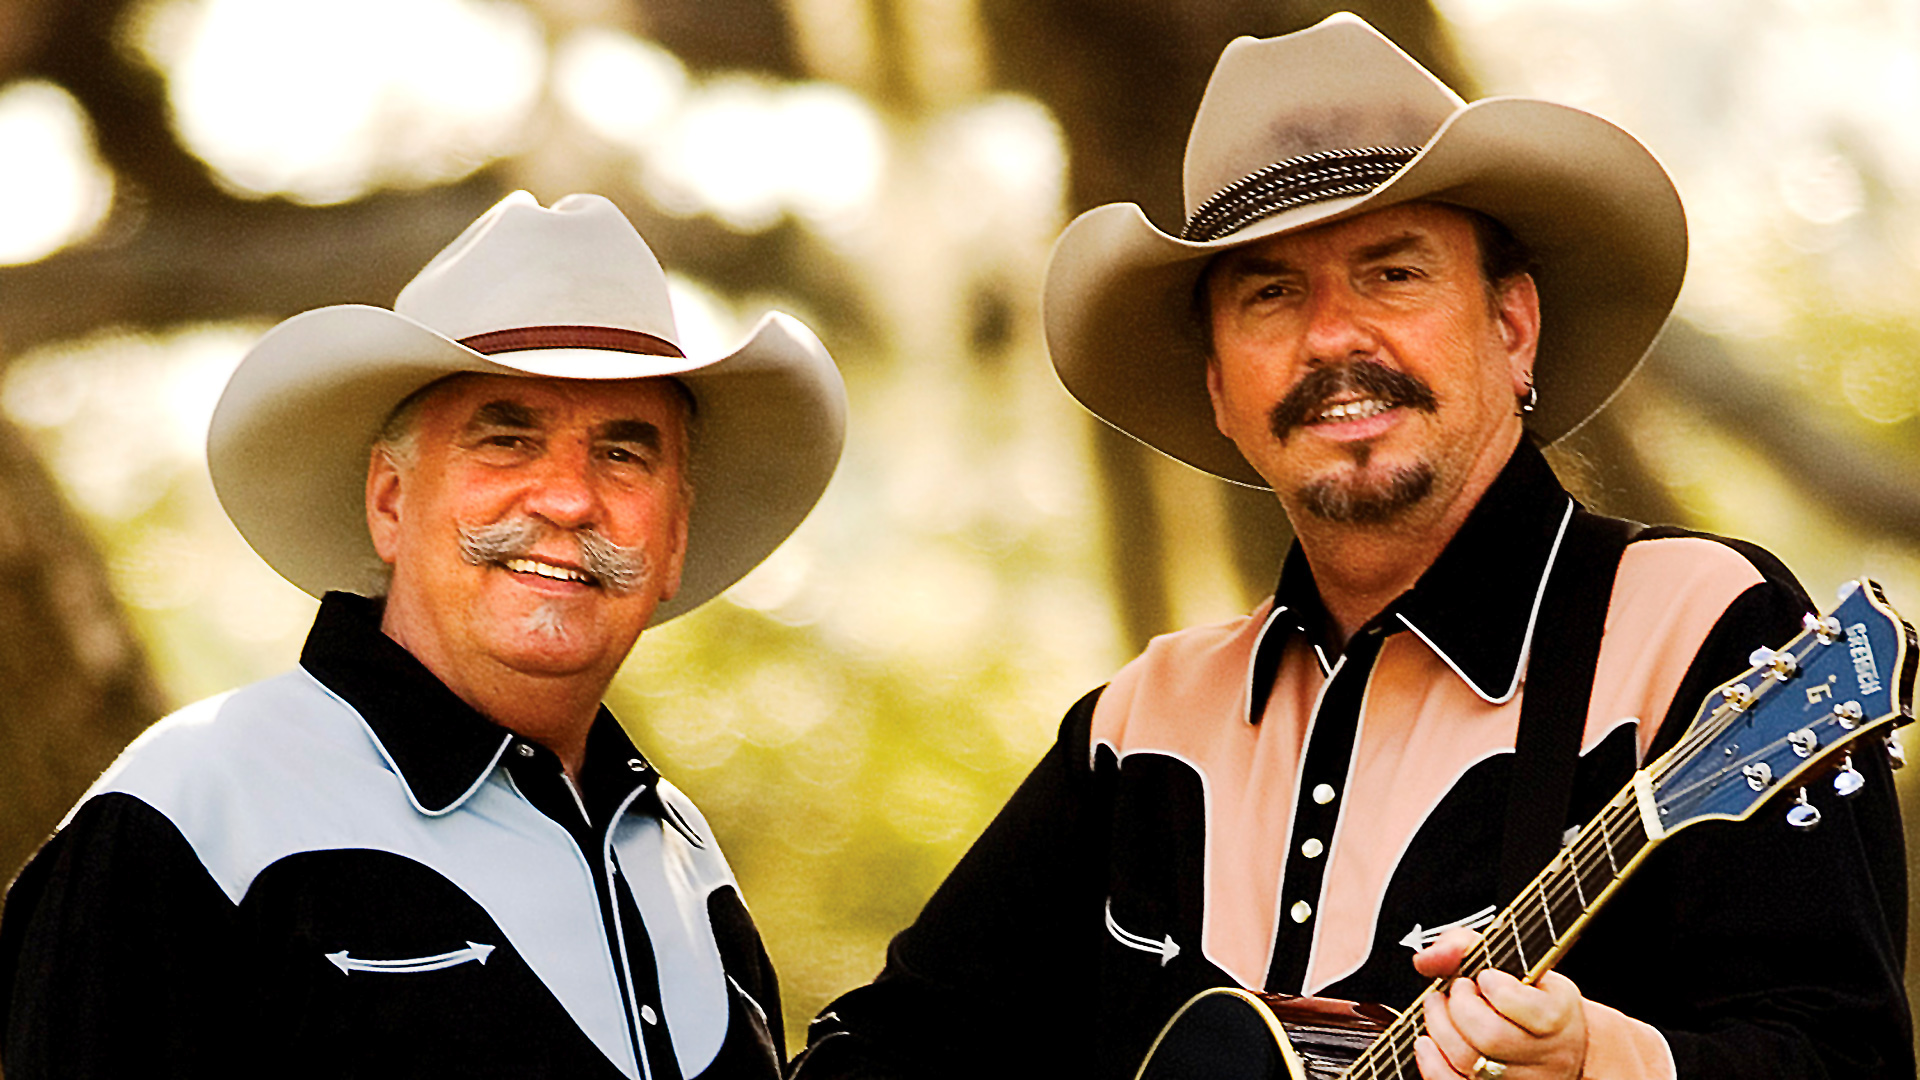 You Ain't Just Whistlin' Dixie av The Bellamy Brothers